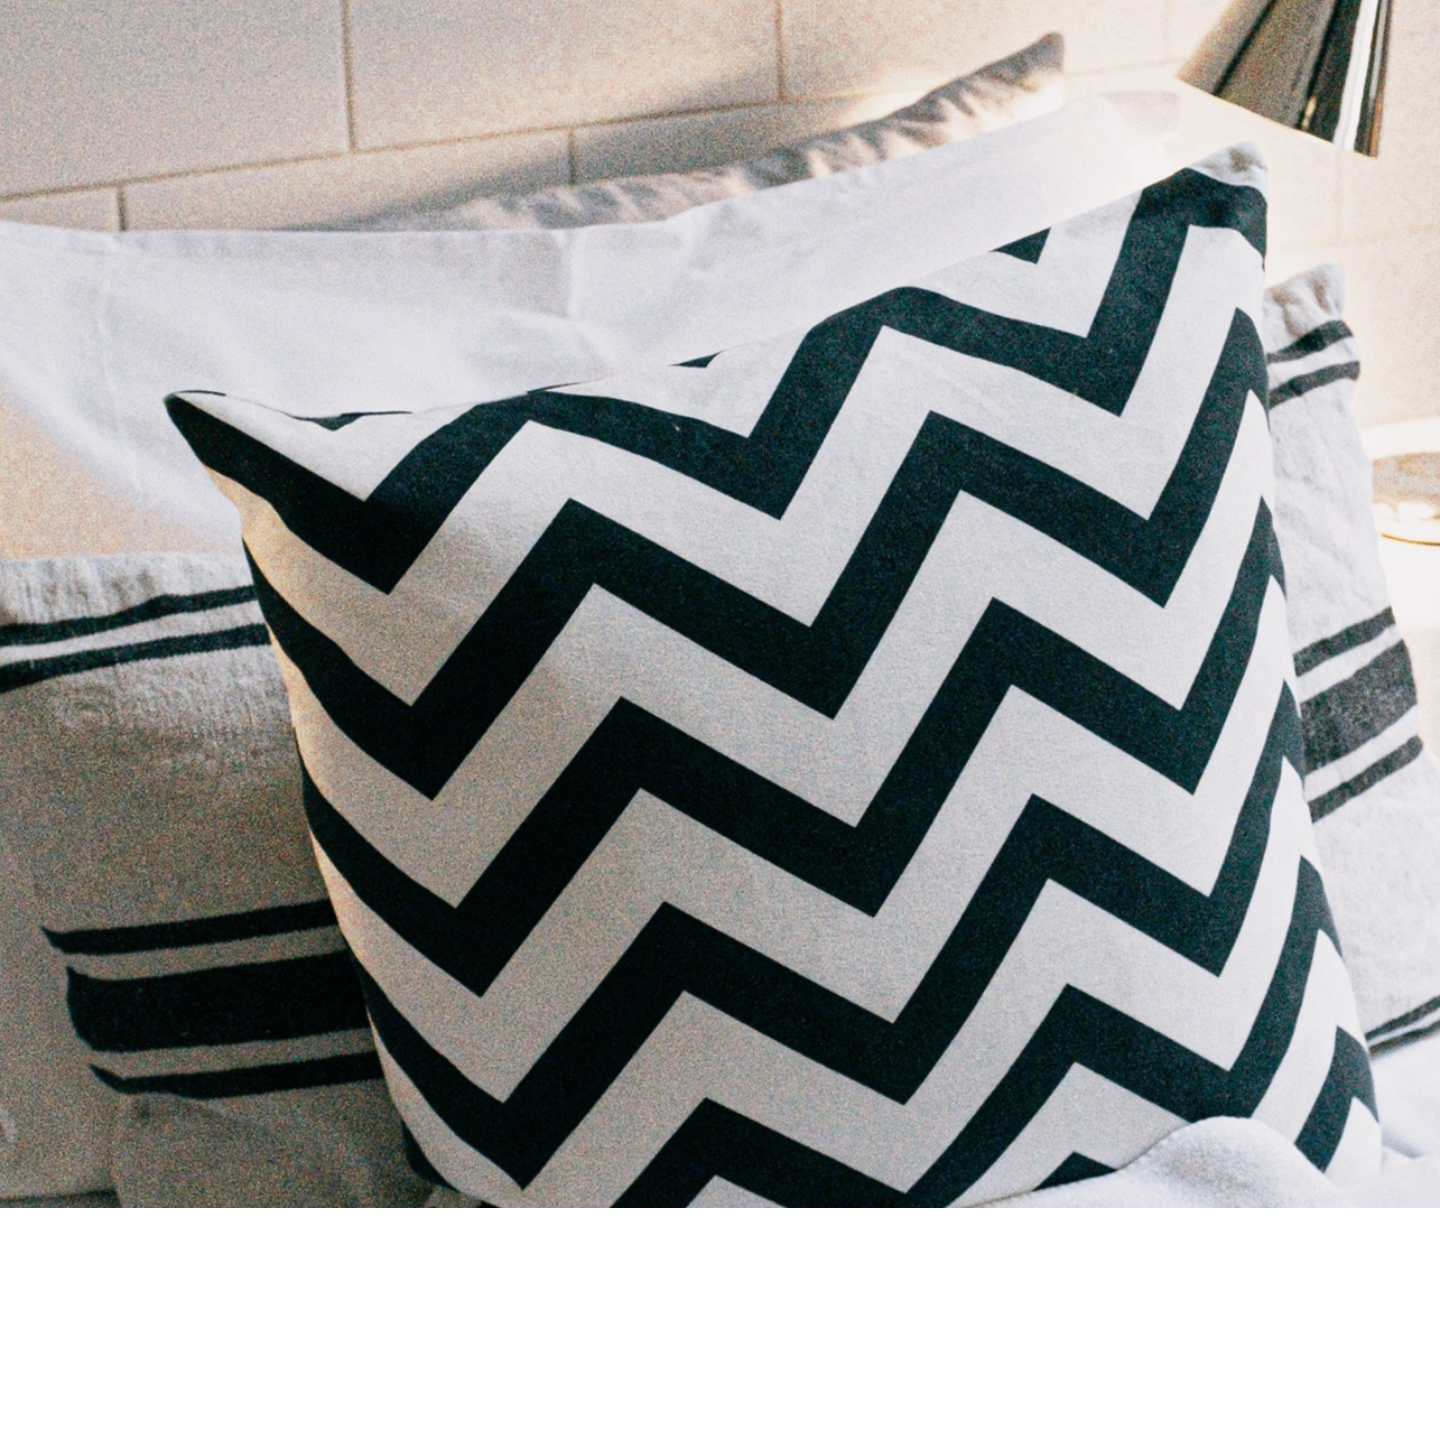 Cushion Cover up to 60cm x 60cm  Pillow Case up to 50cm x 90cm Dry Clean